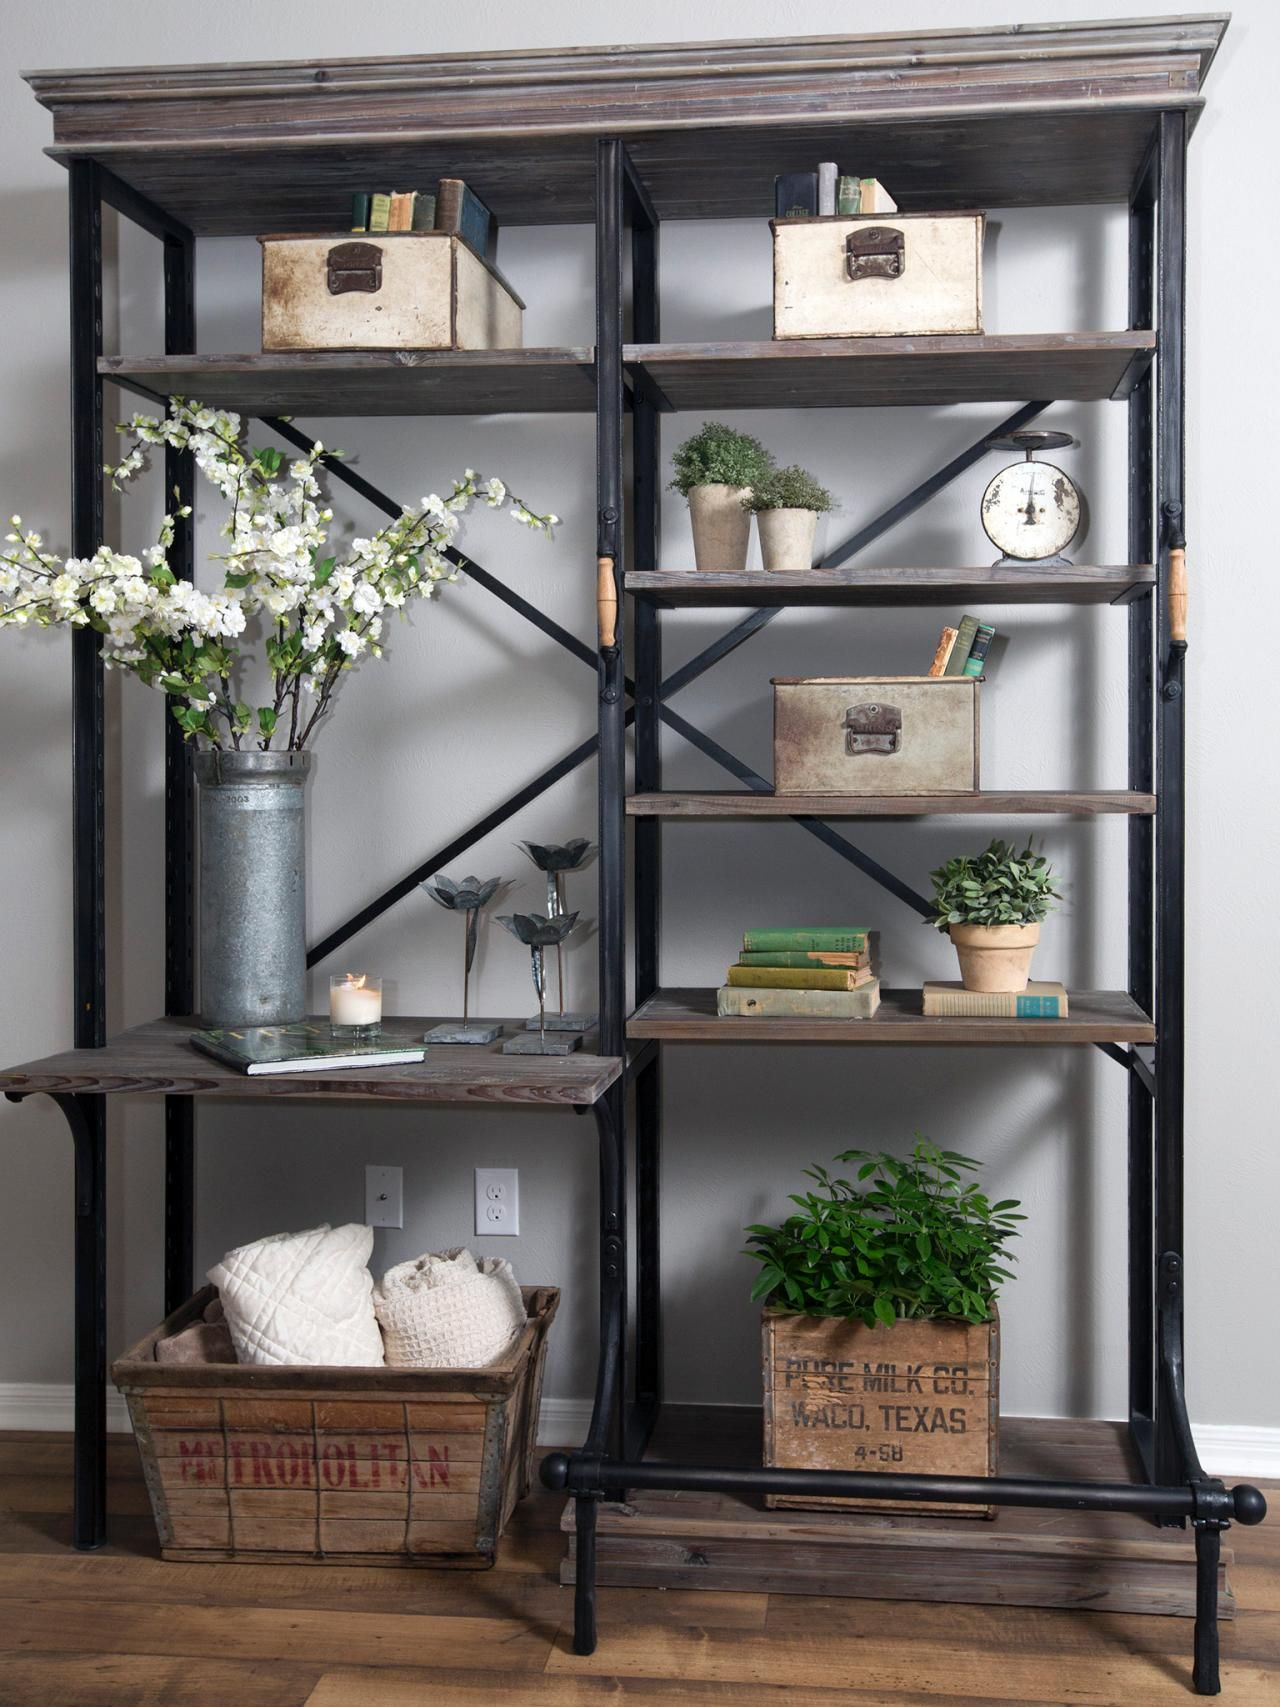 1000 images about decorating bookcases and shelves on pinterest - Joanna Gaines Is The Queen Of Shelf Styling So Take A Cue From Her